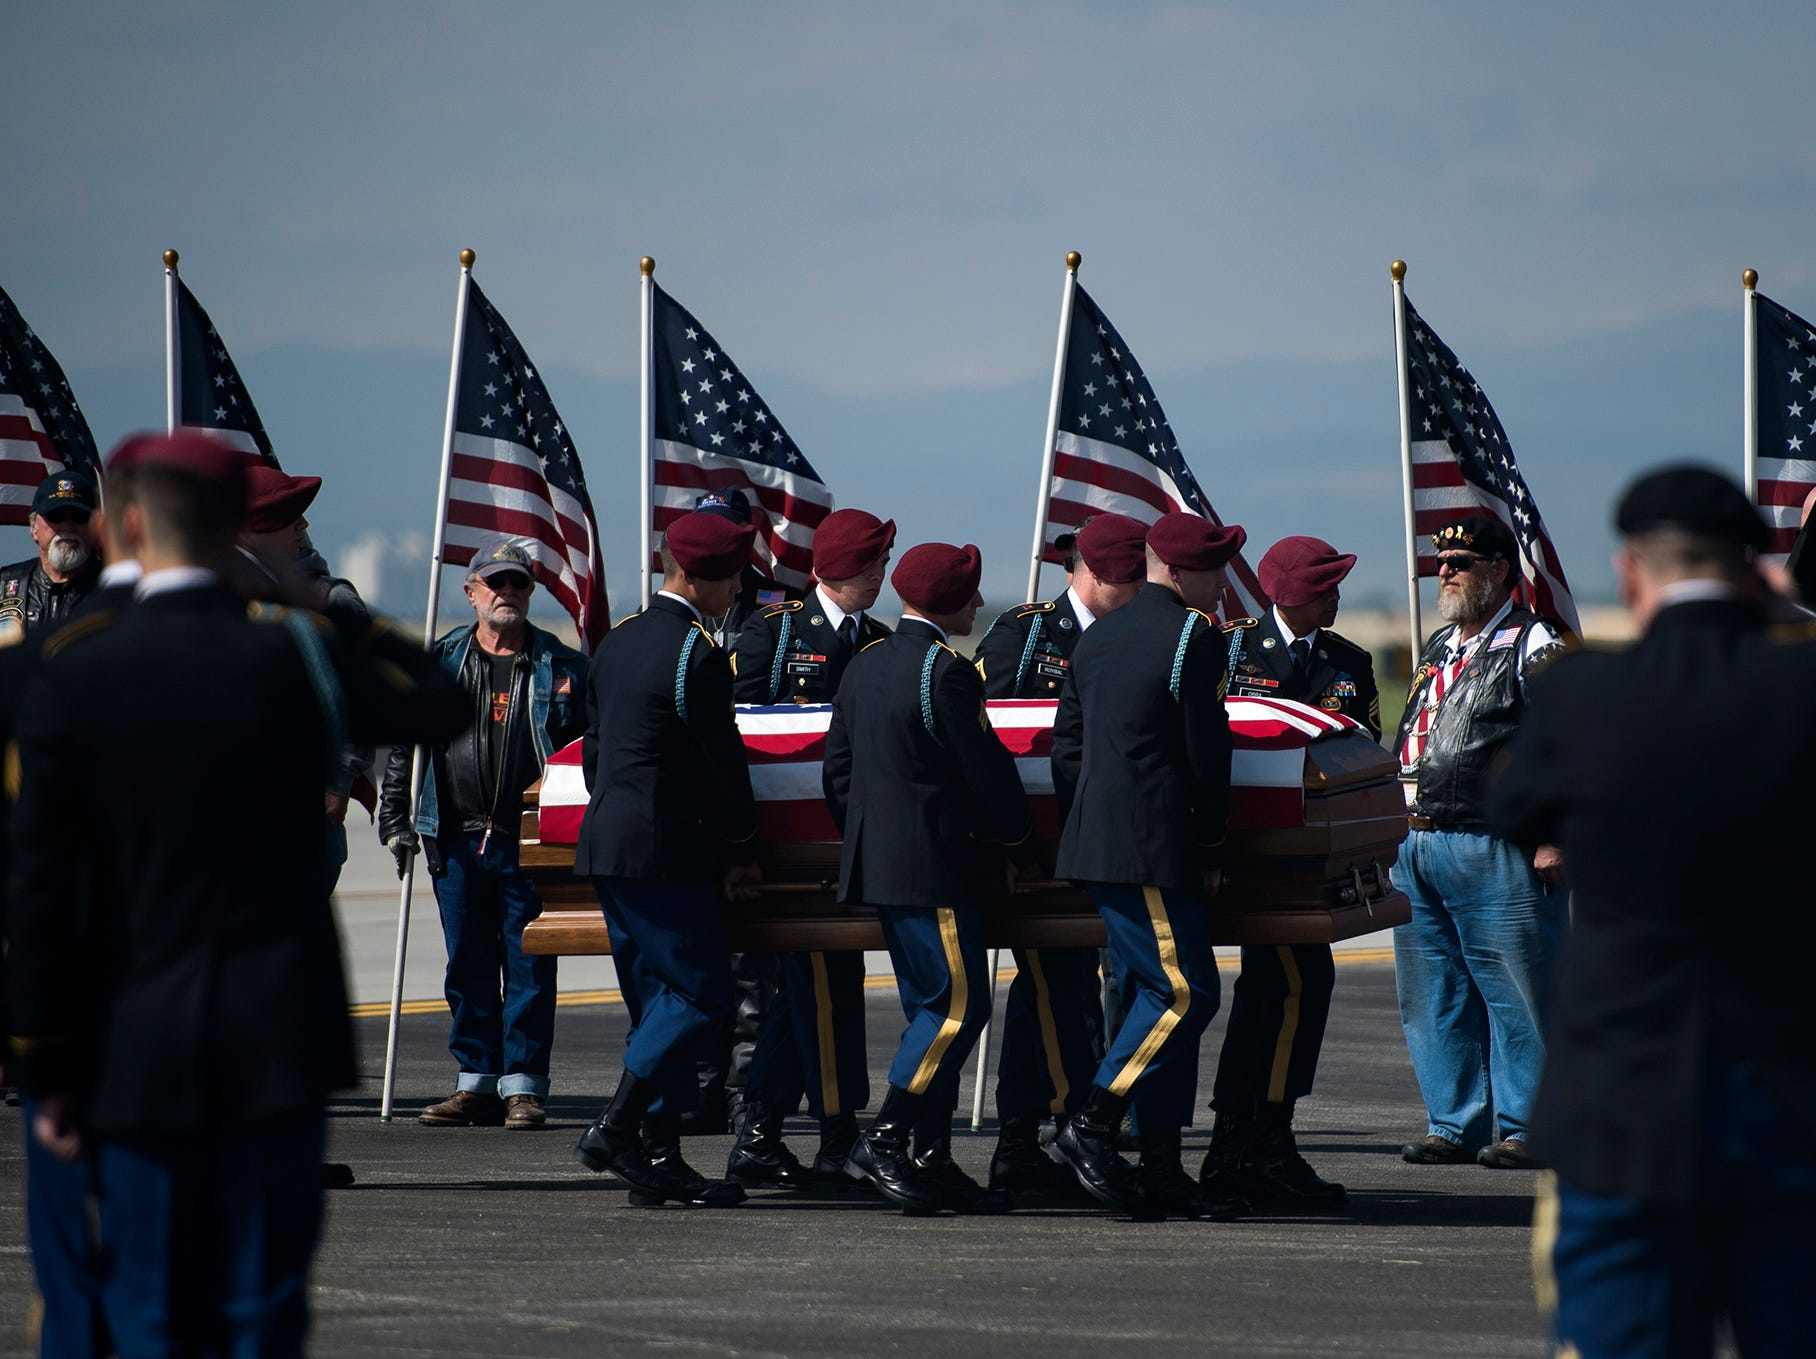 Fallen U.S. Army Specialist Gabriel Conde's body is carried to the hearse by honor guards before a procession to Longmont on Friday, May 11, 2018, at the Northern Colorado Regional Airport in Loveland, Colo.